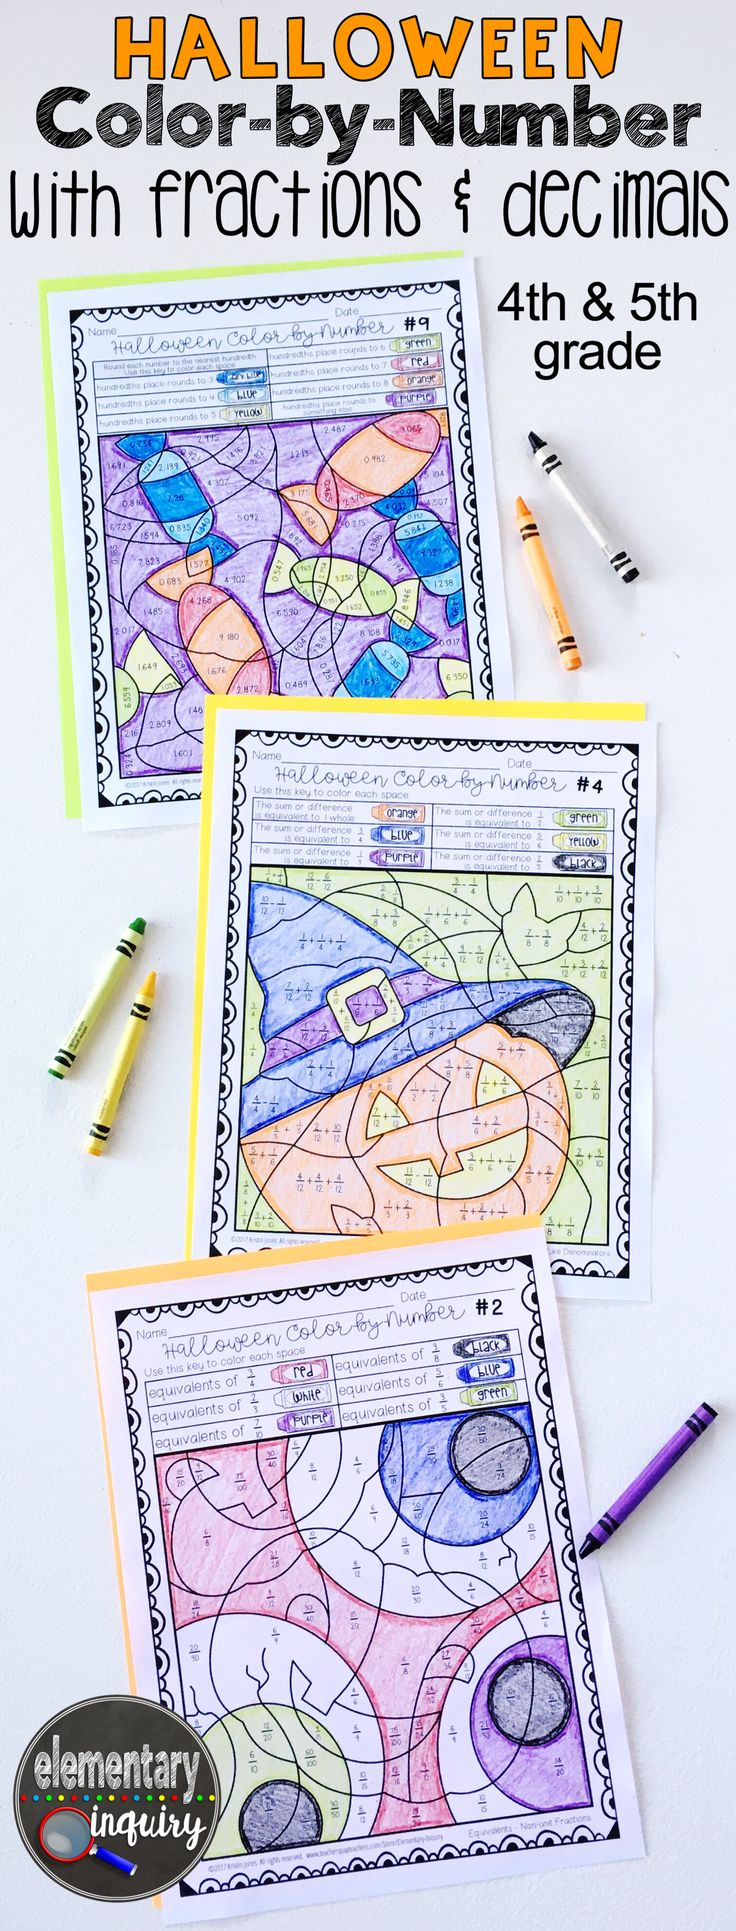 Halloween Math worksheets with fractions and decimals for 4th grade and 5th grade #education #teacherspayteachers #tpt #4thgrade #5thgrade #6thgrade #iteachupperelementary #iteachtoo #teachersfollowteachers #teacherspinteachers #elementaryinquiry #math #fractions #decimals #halloween #october